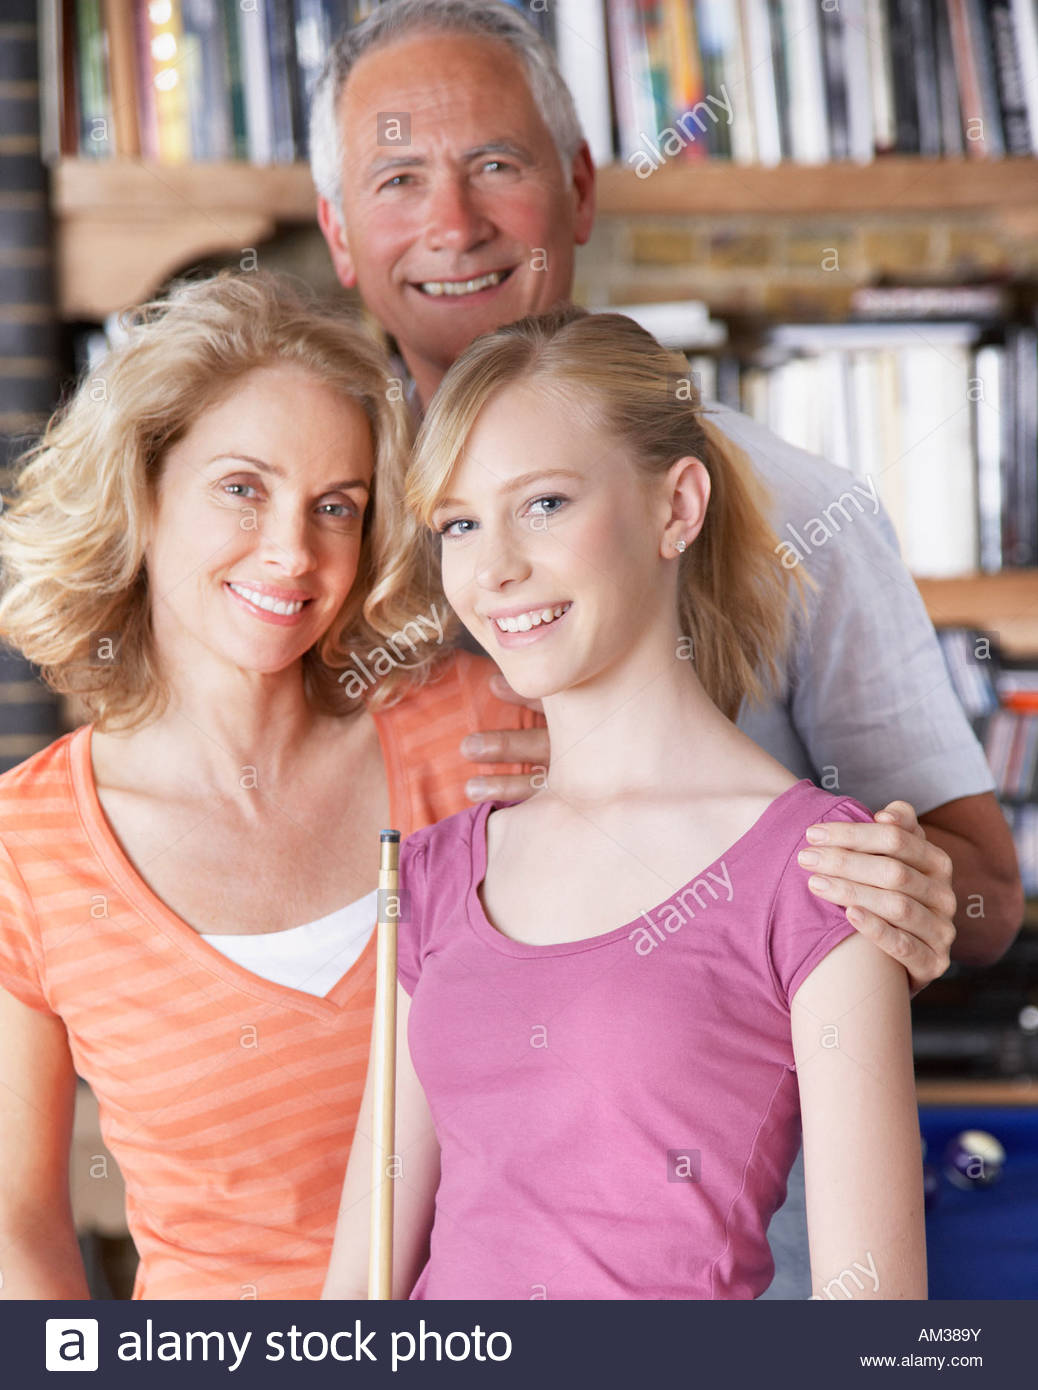 Couple with girl holding pool cues - Stock Image